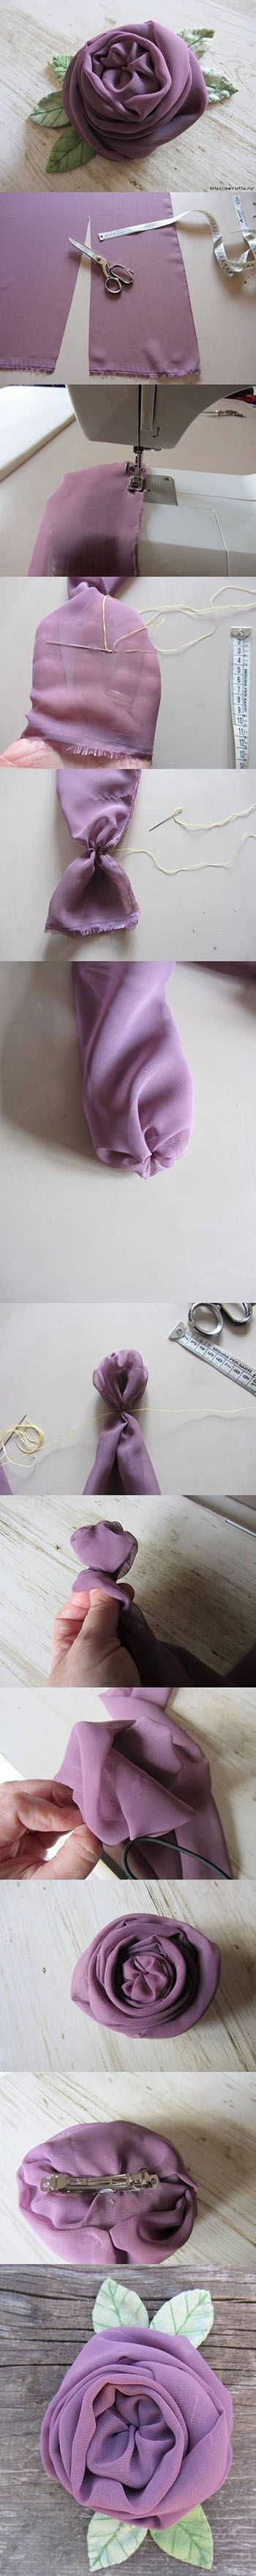 This DIY Flower tutorial shows you how to make a chiffon flower. Lovely, elegant.